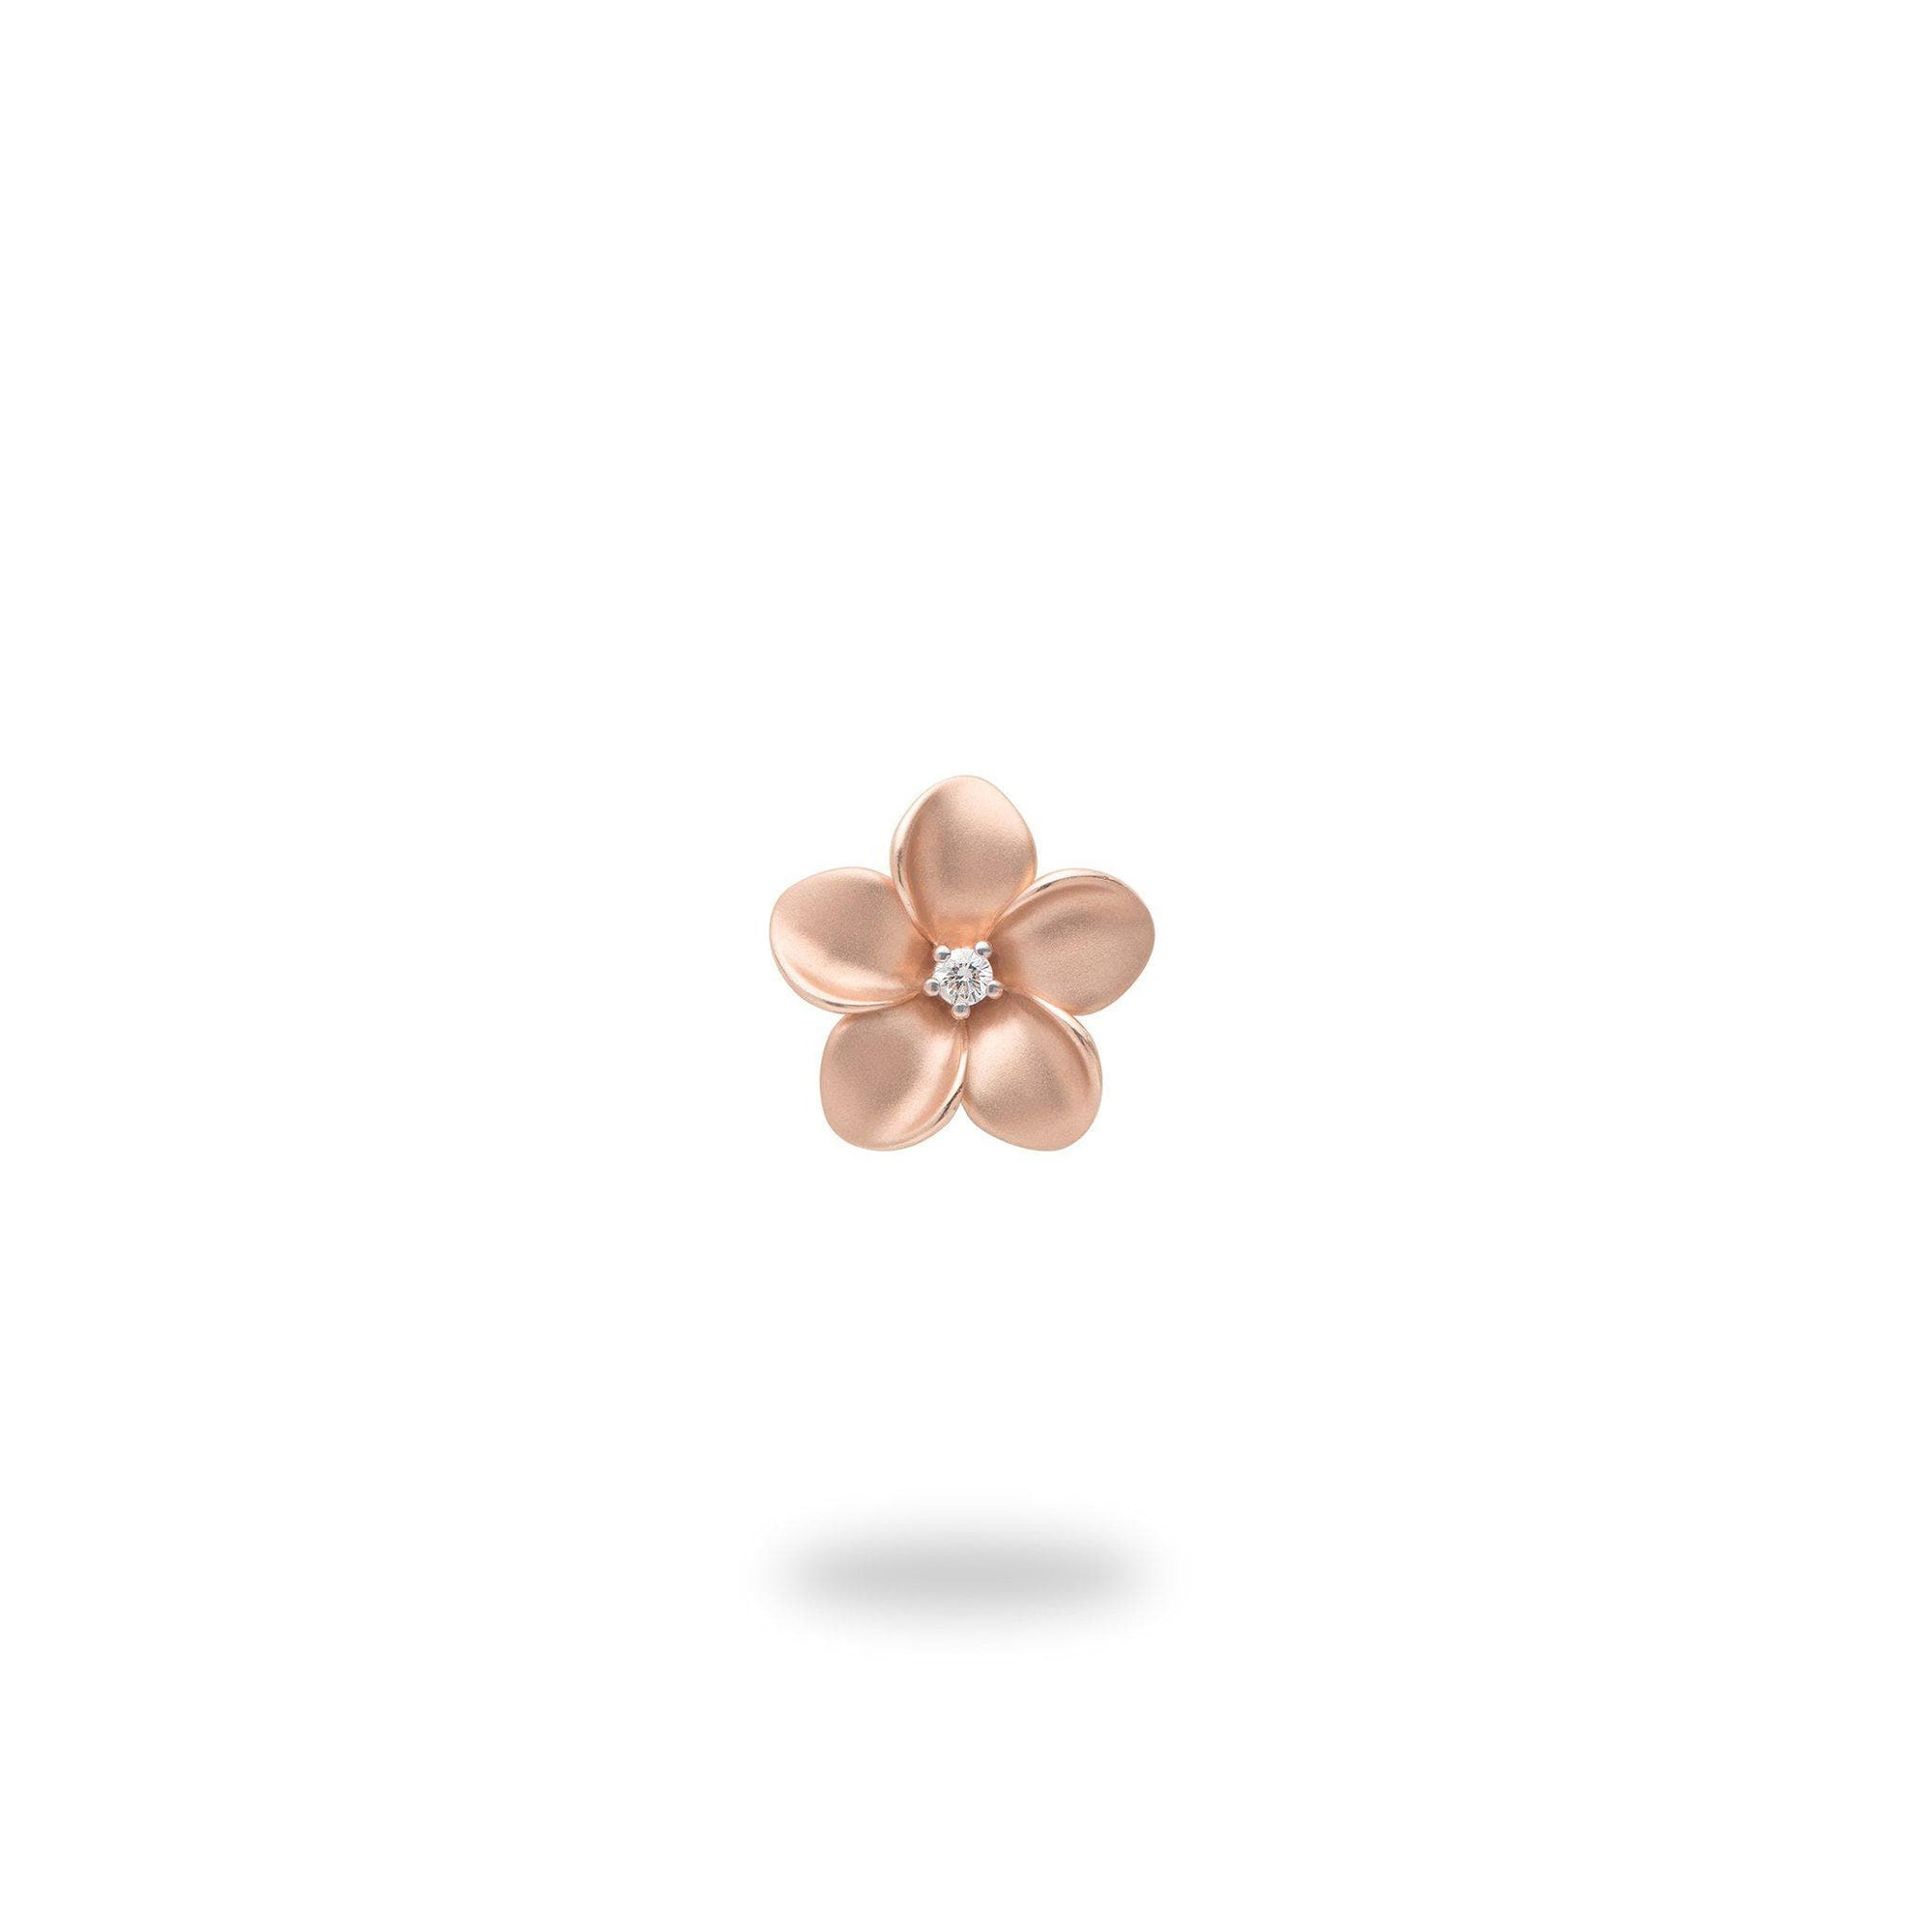 Plumeria Pendant in Rose Gold with Diamond - 9mm-[SKU]